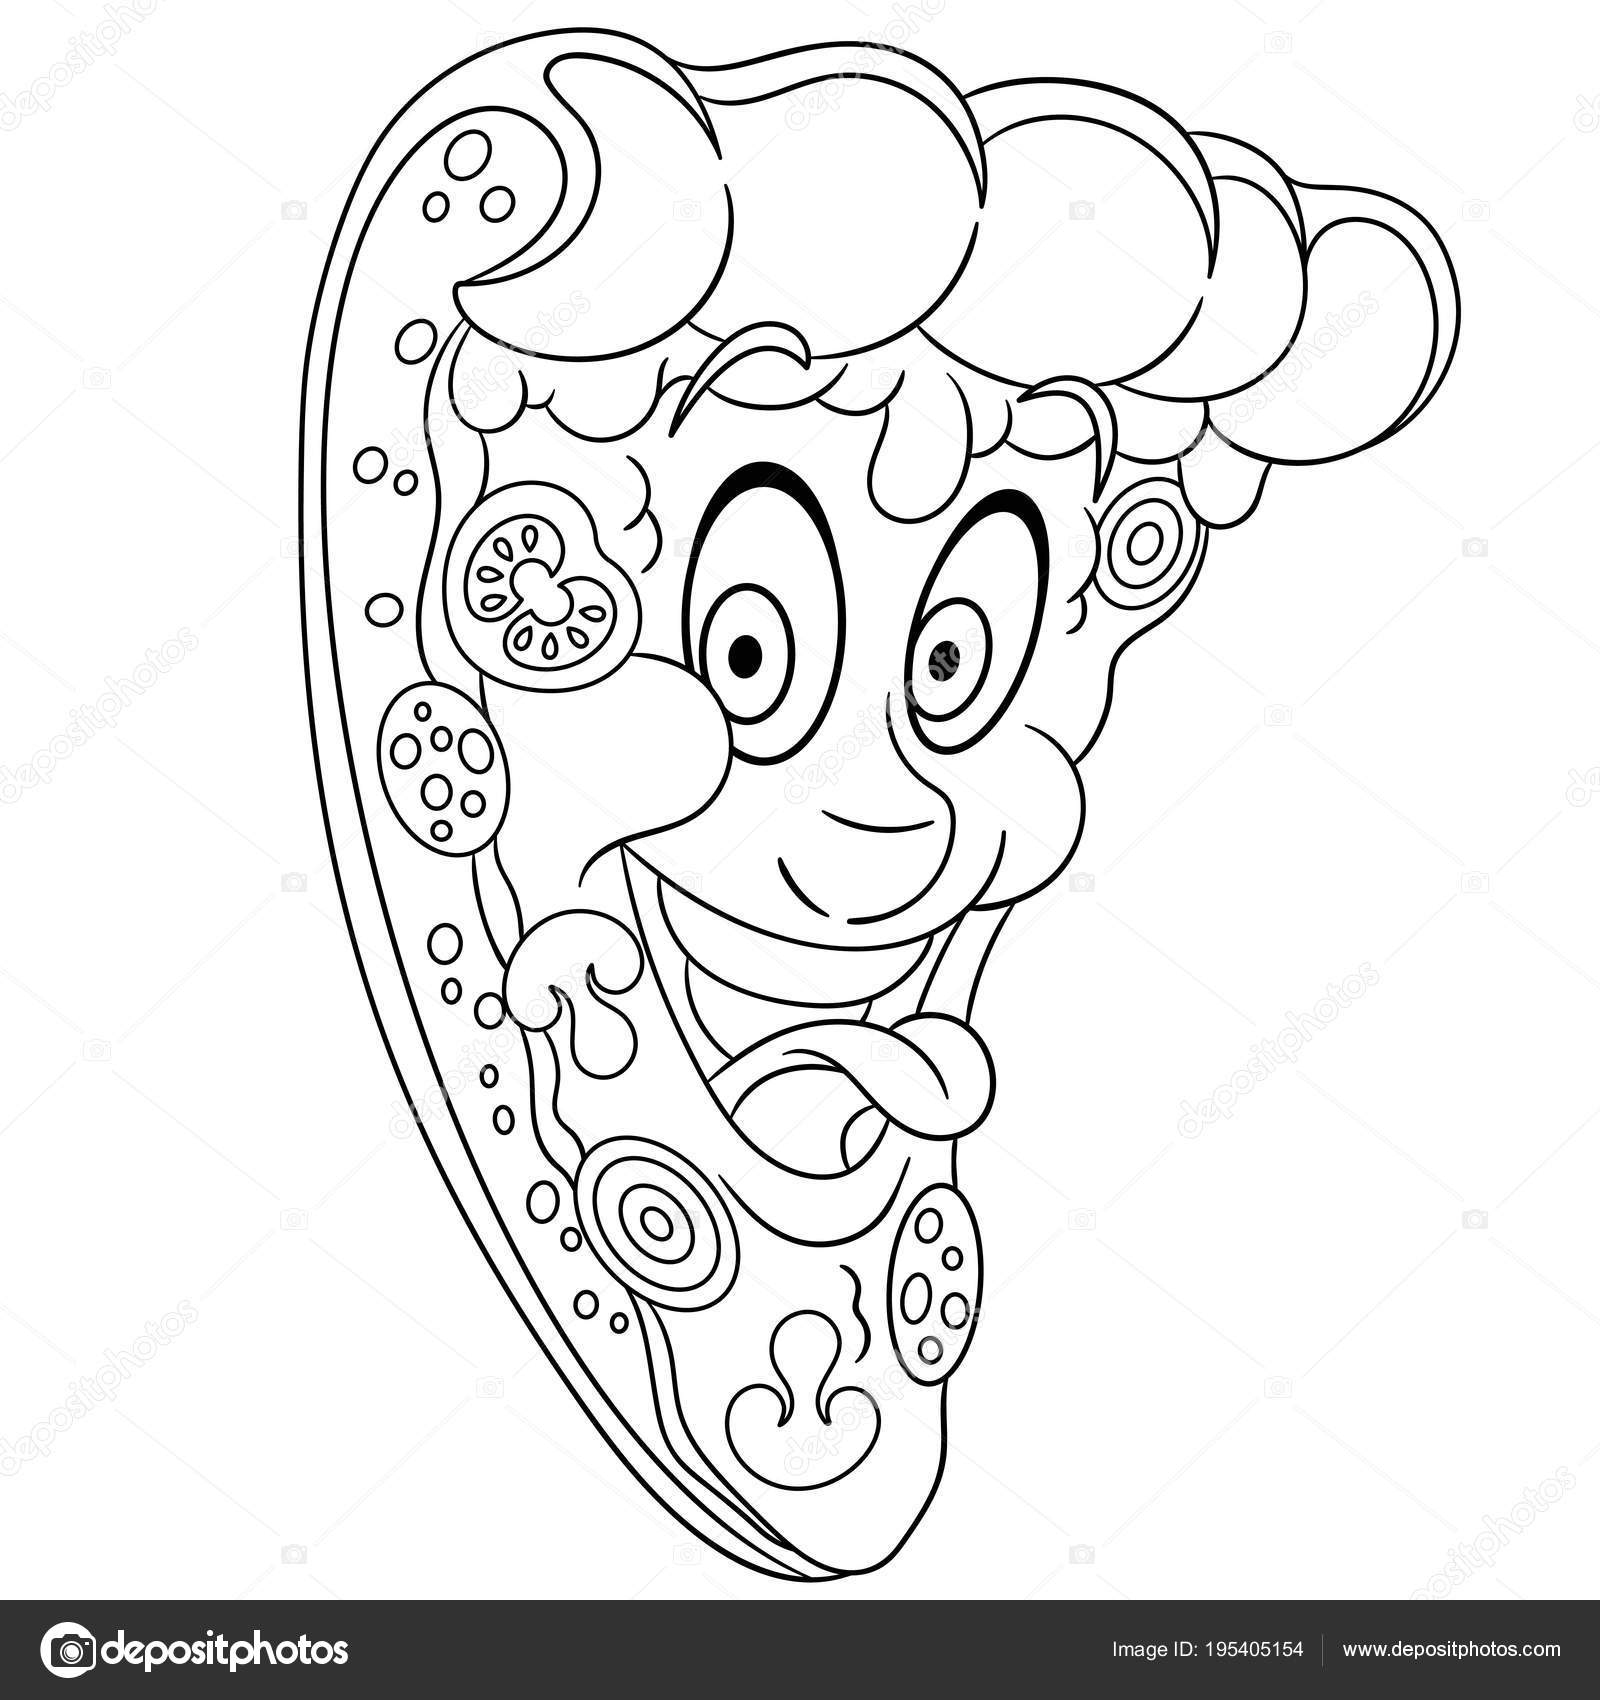 Coloring Book Coloring Page Colouring Picture Pepperoni Pizza Slice